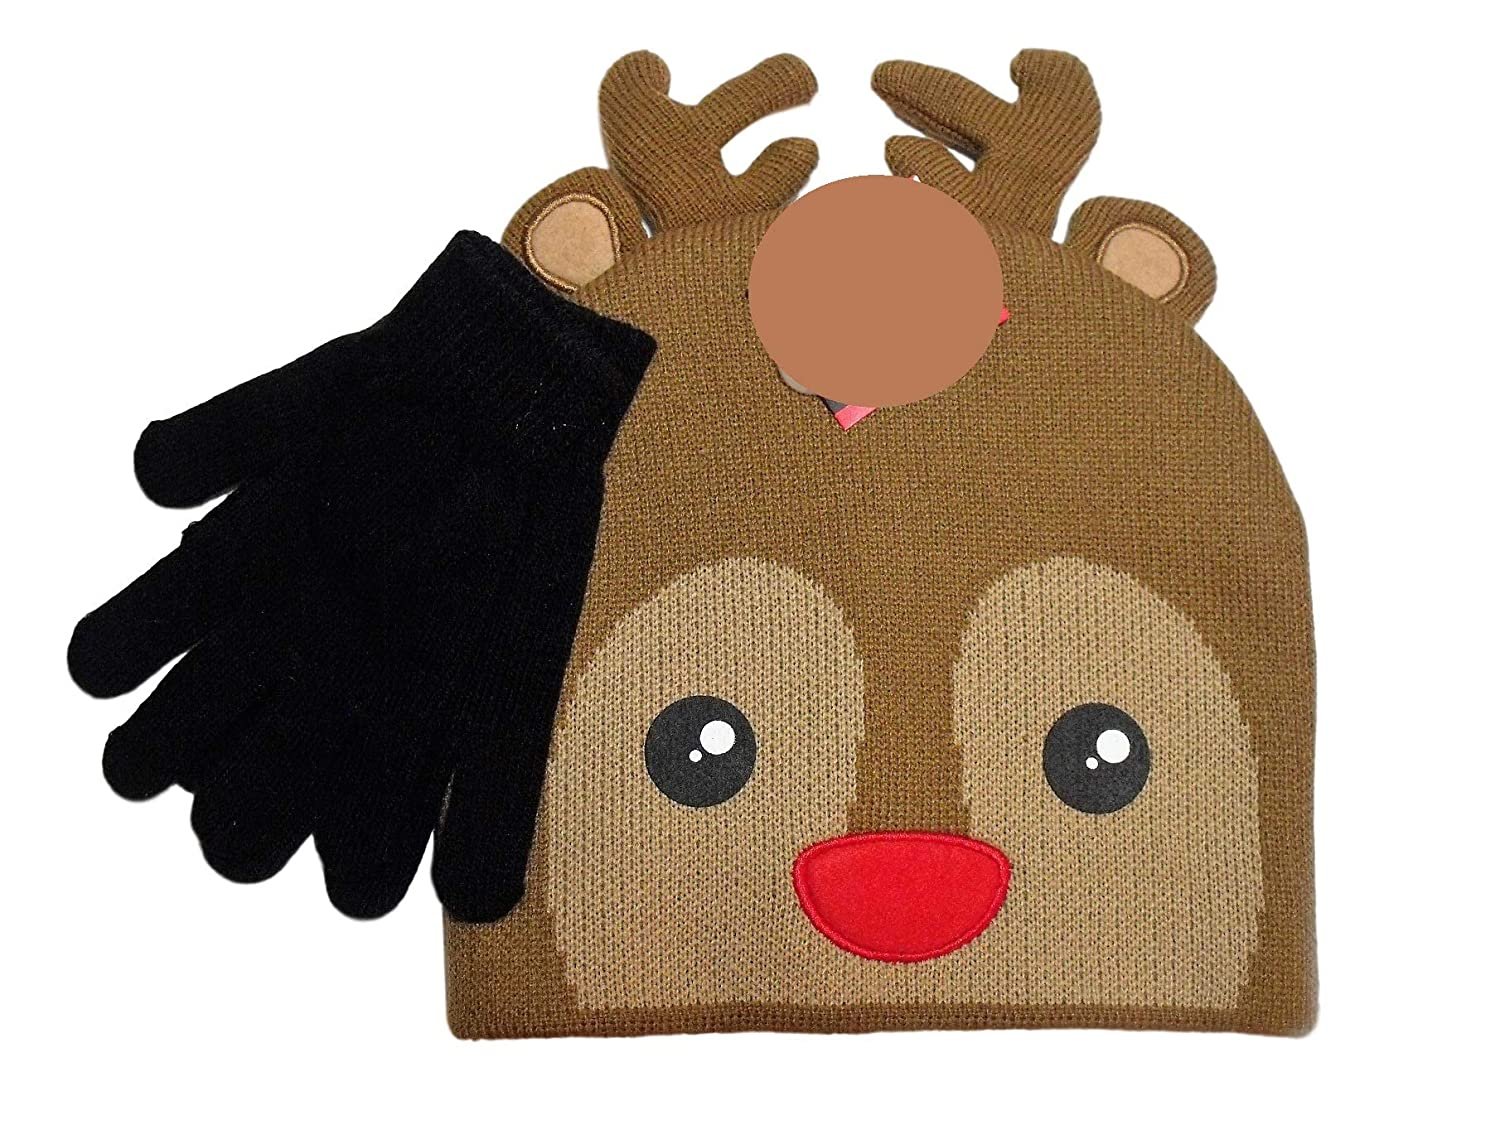 Christmas Rudolph Red Nosed Reindeer Face Knit Beanie Hat Black Gloves Set